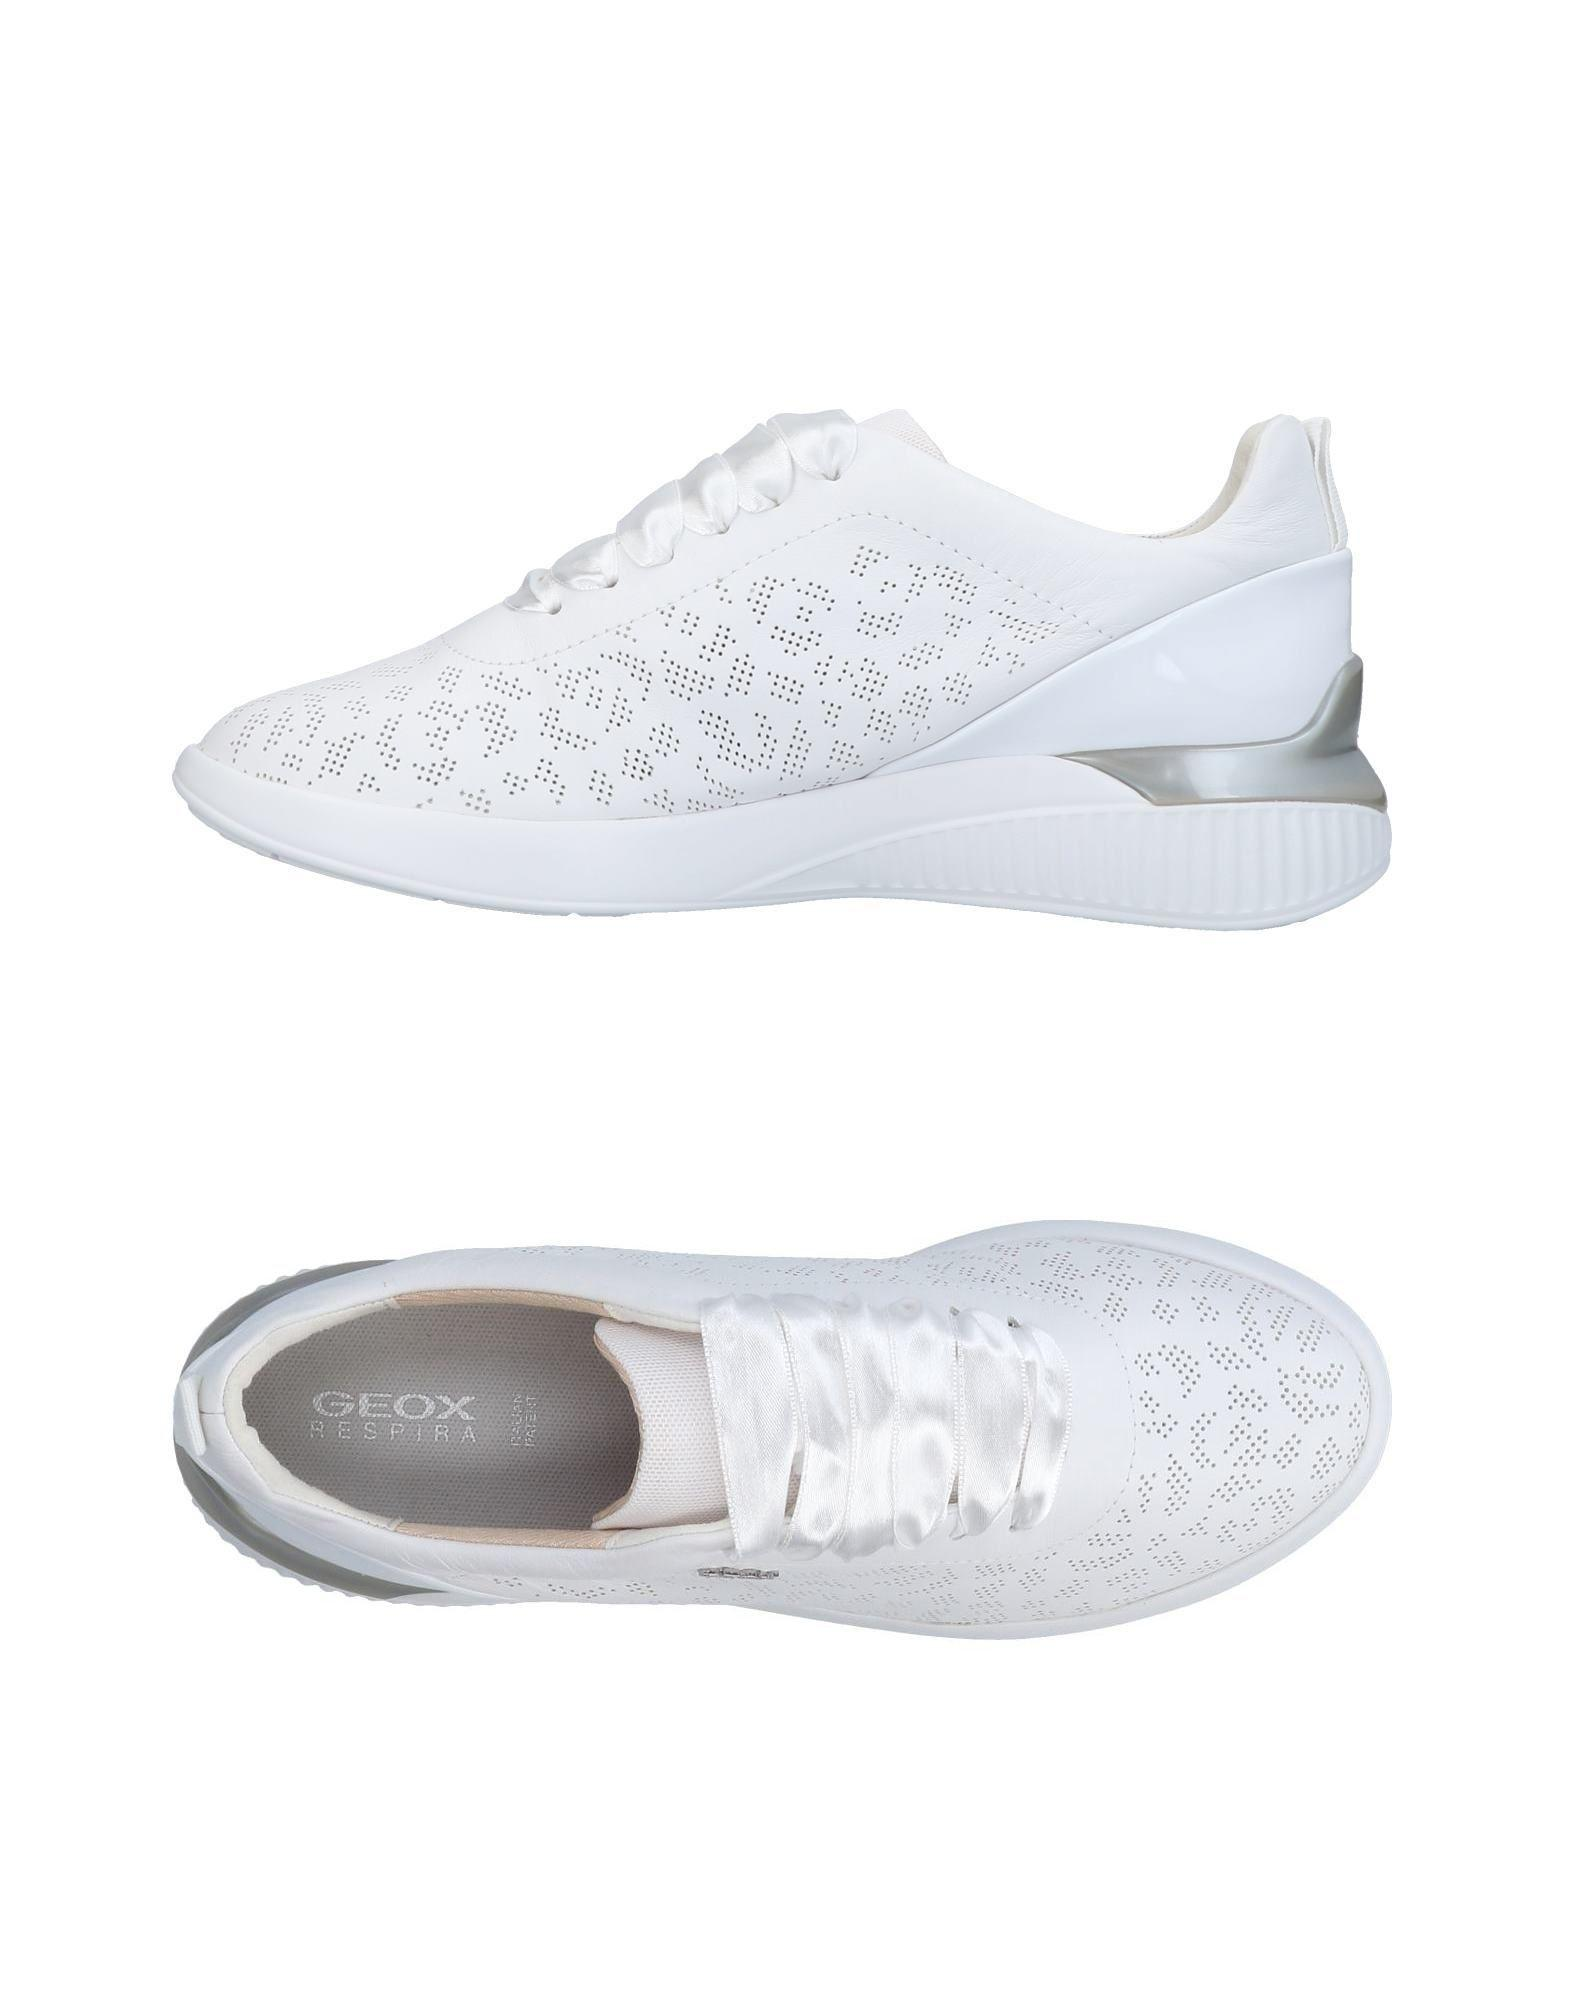 Geox Sneakers In White